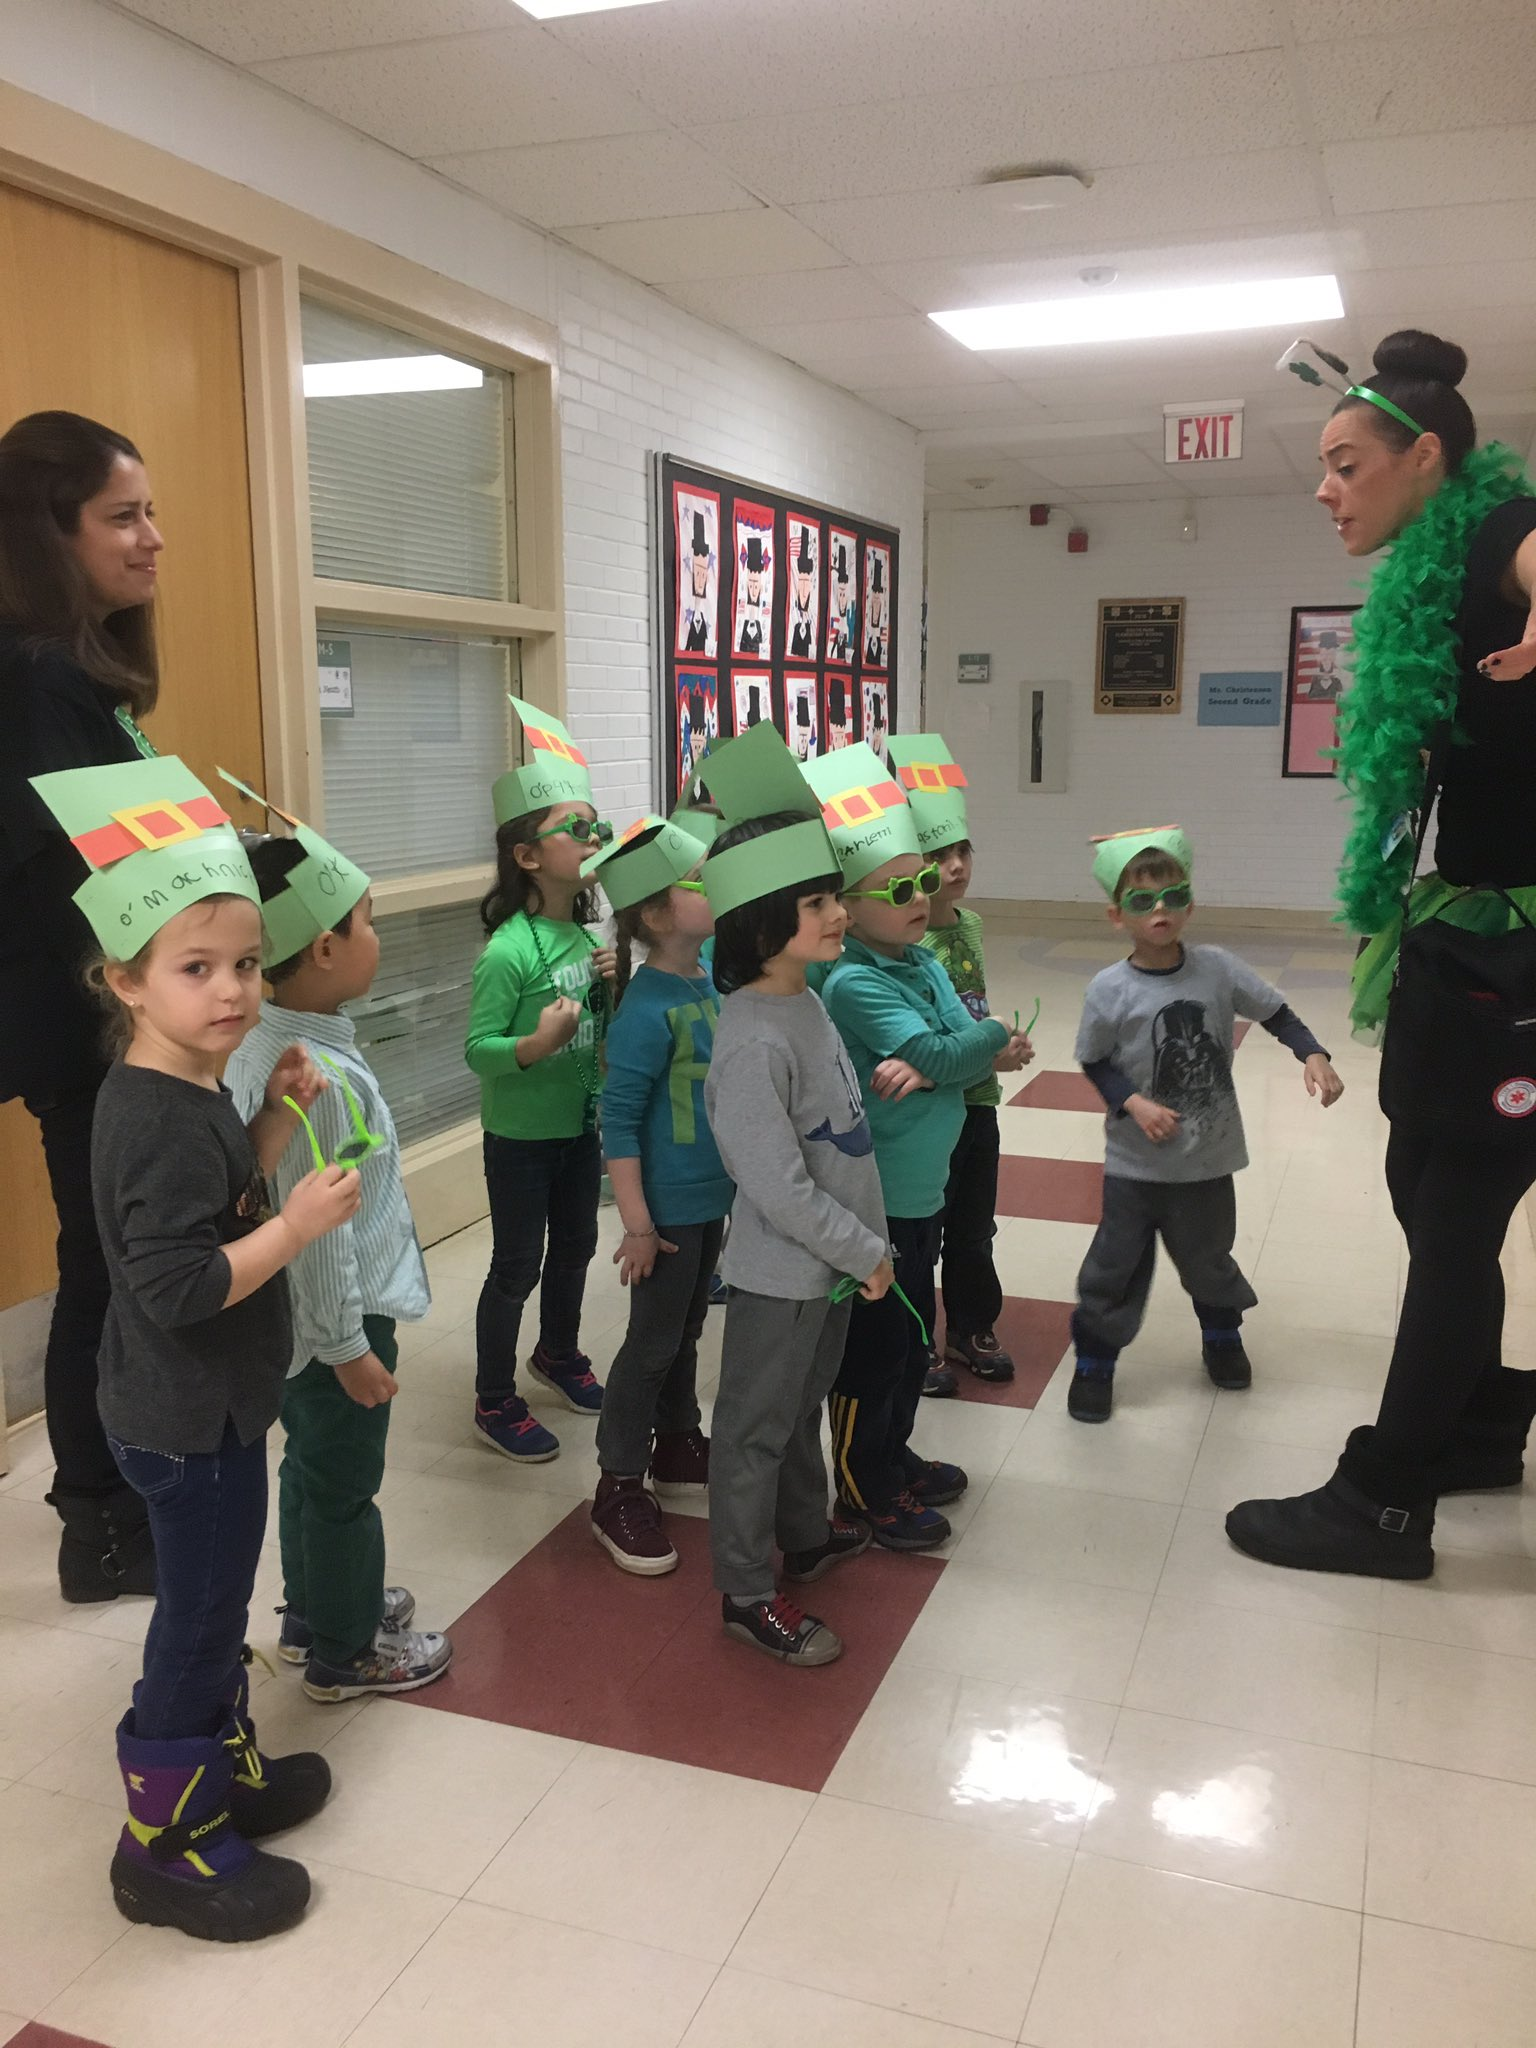 """I'm so excited I'm shaking!"" Said a preschooler searching for leprechauns! @Karmstrong109 #hh109 #engage109 #sp109 https://t.co/VpjYKWFDFe"